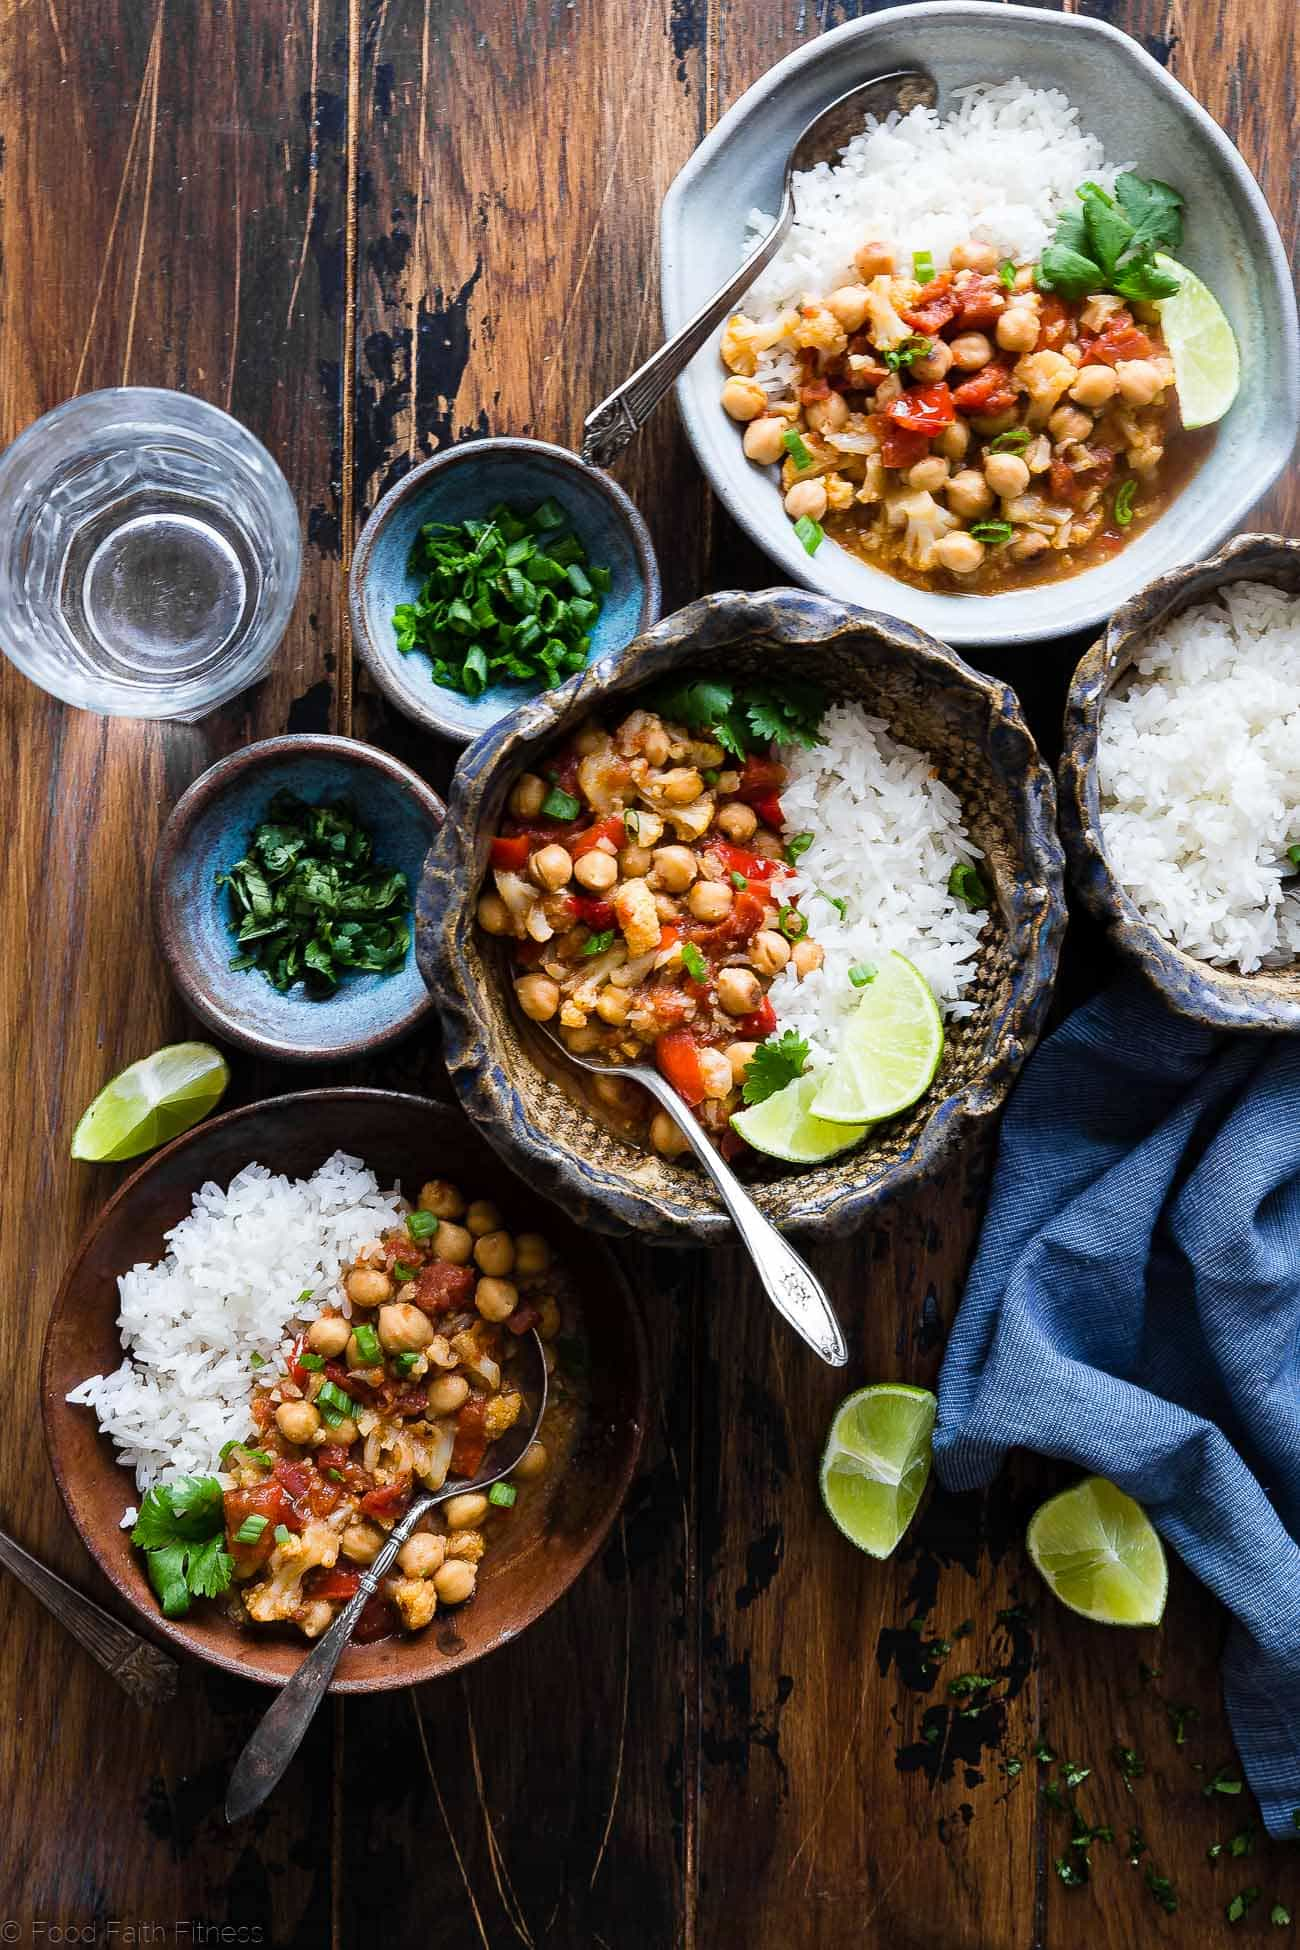 Instant Pot Vegan Chickpea Curry - This easy healthy chickpea curry is made in the Instant Pot and ready in 20 mins! It uses coconut milk and tomatoes to make it thick and so creamy! Makes great leftovers and is great for meal prep! | Foodfaithfitness.com | @FoodFaithFit